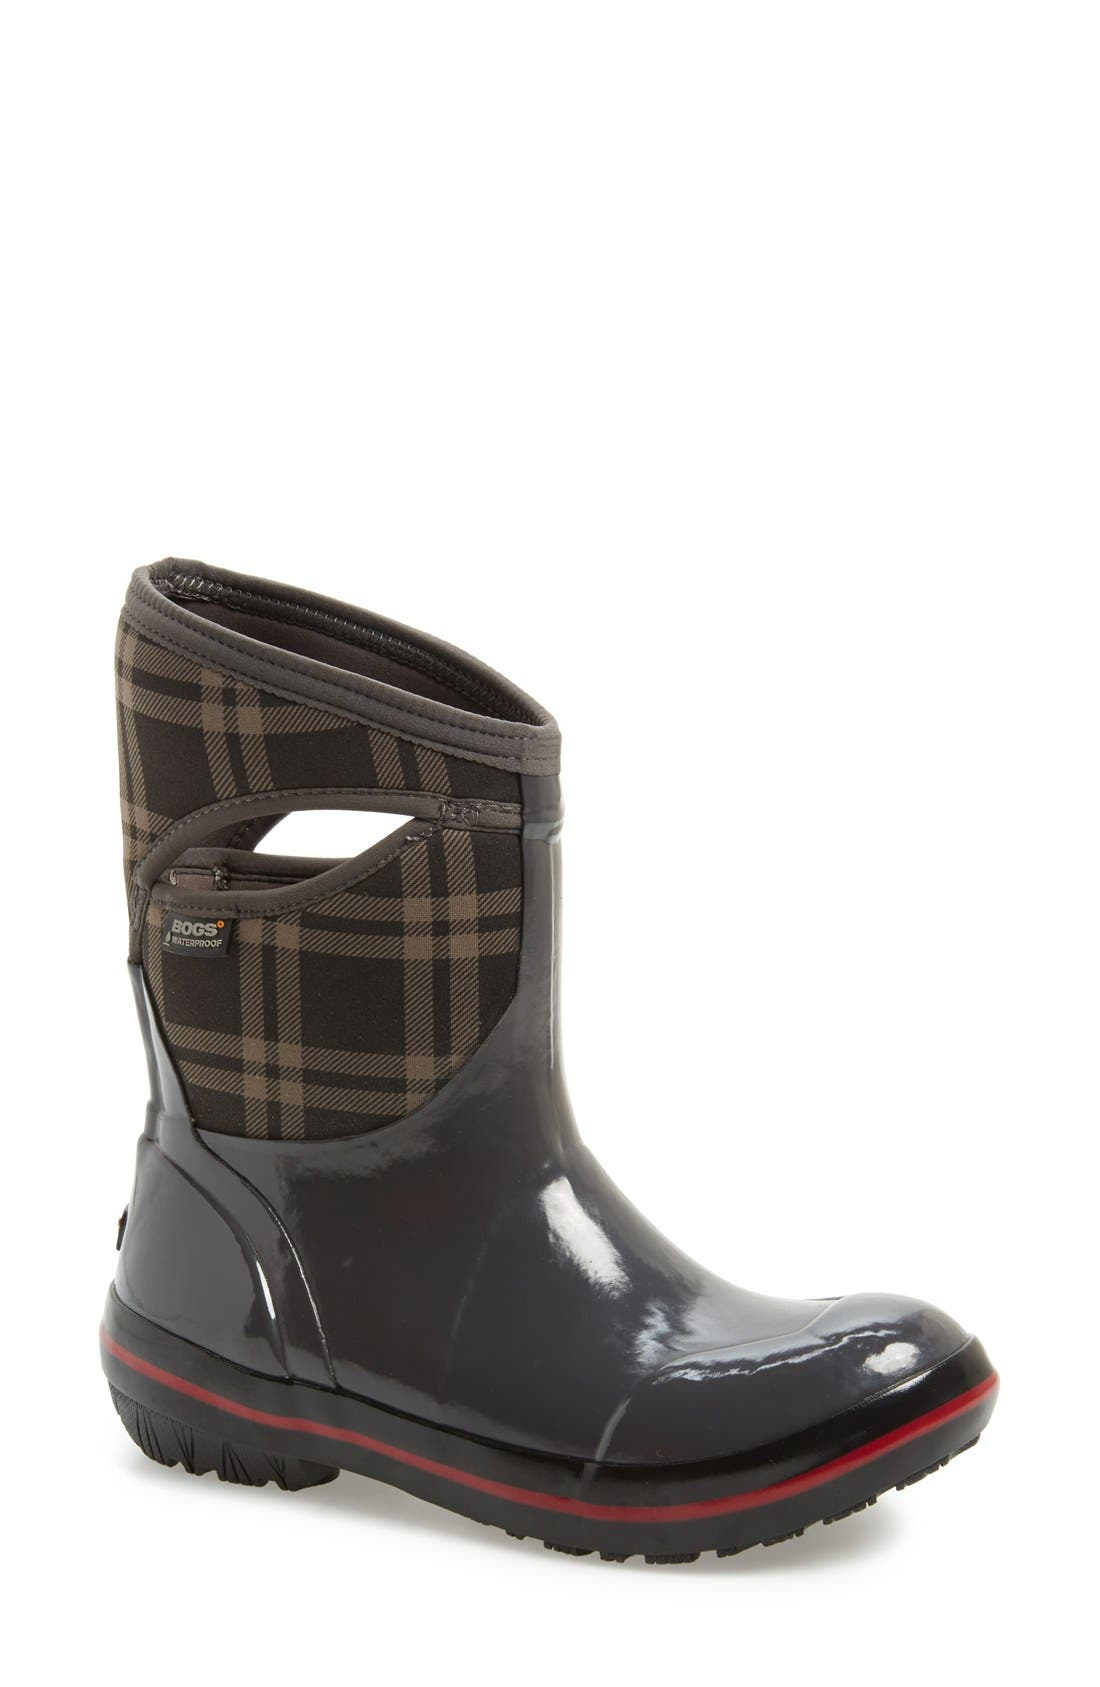 BOGS 'Pimsoll Plaid' Mid High Waterproof Snow Boot